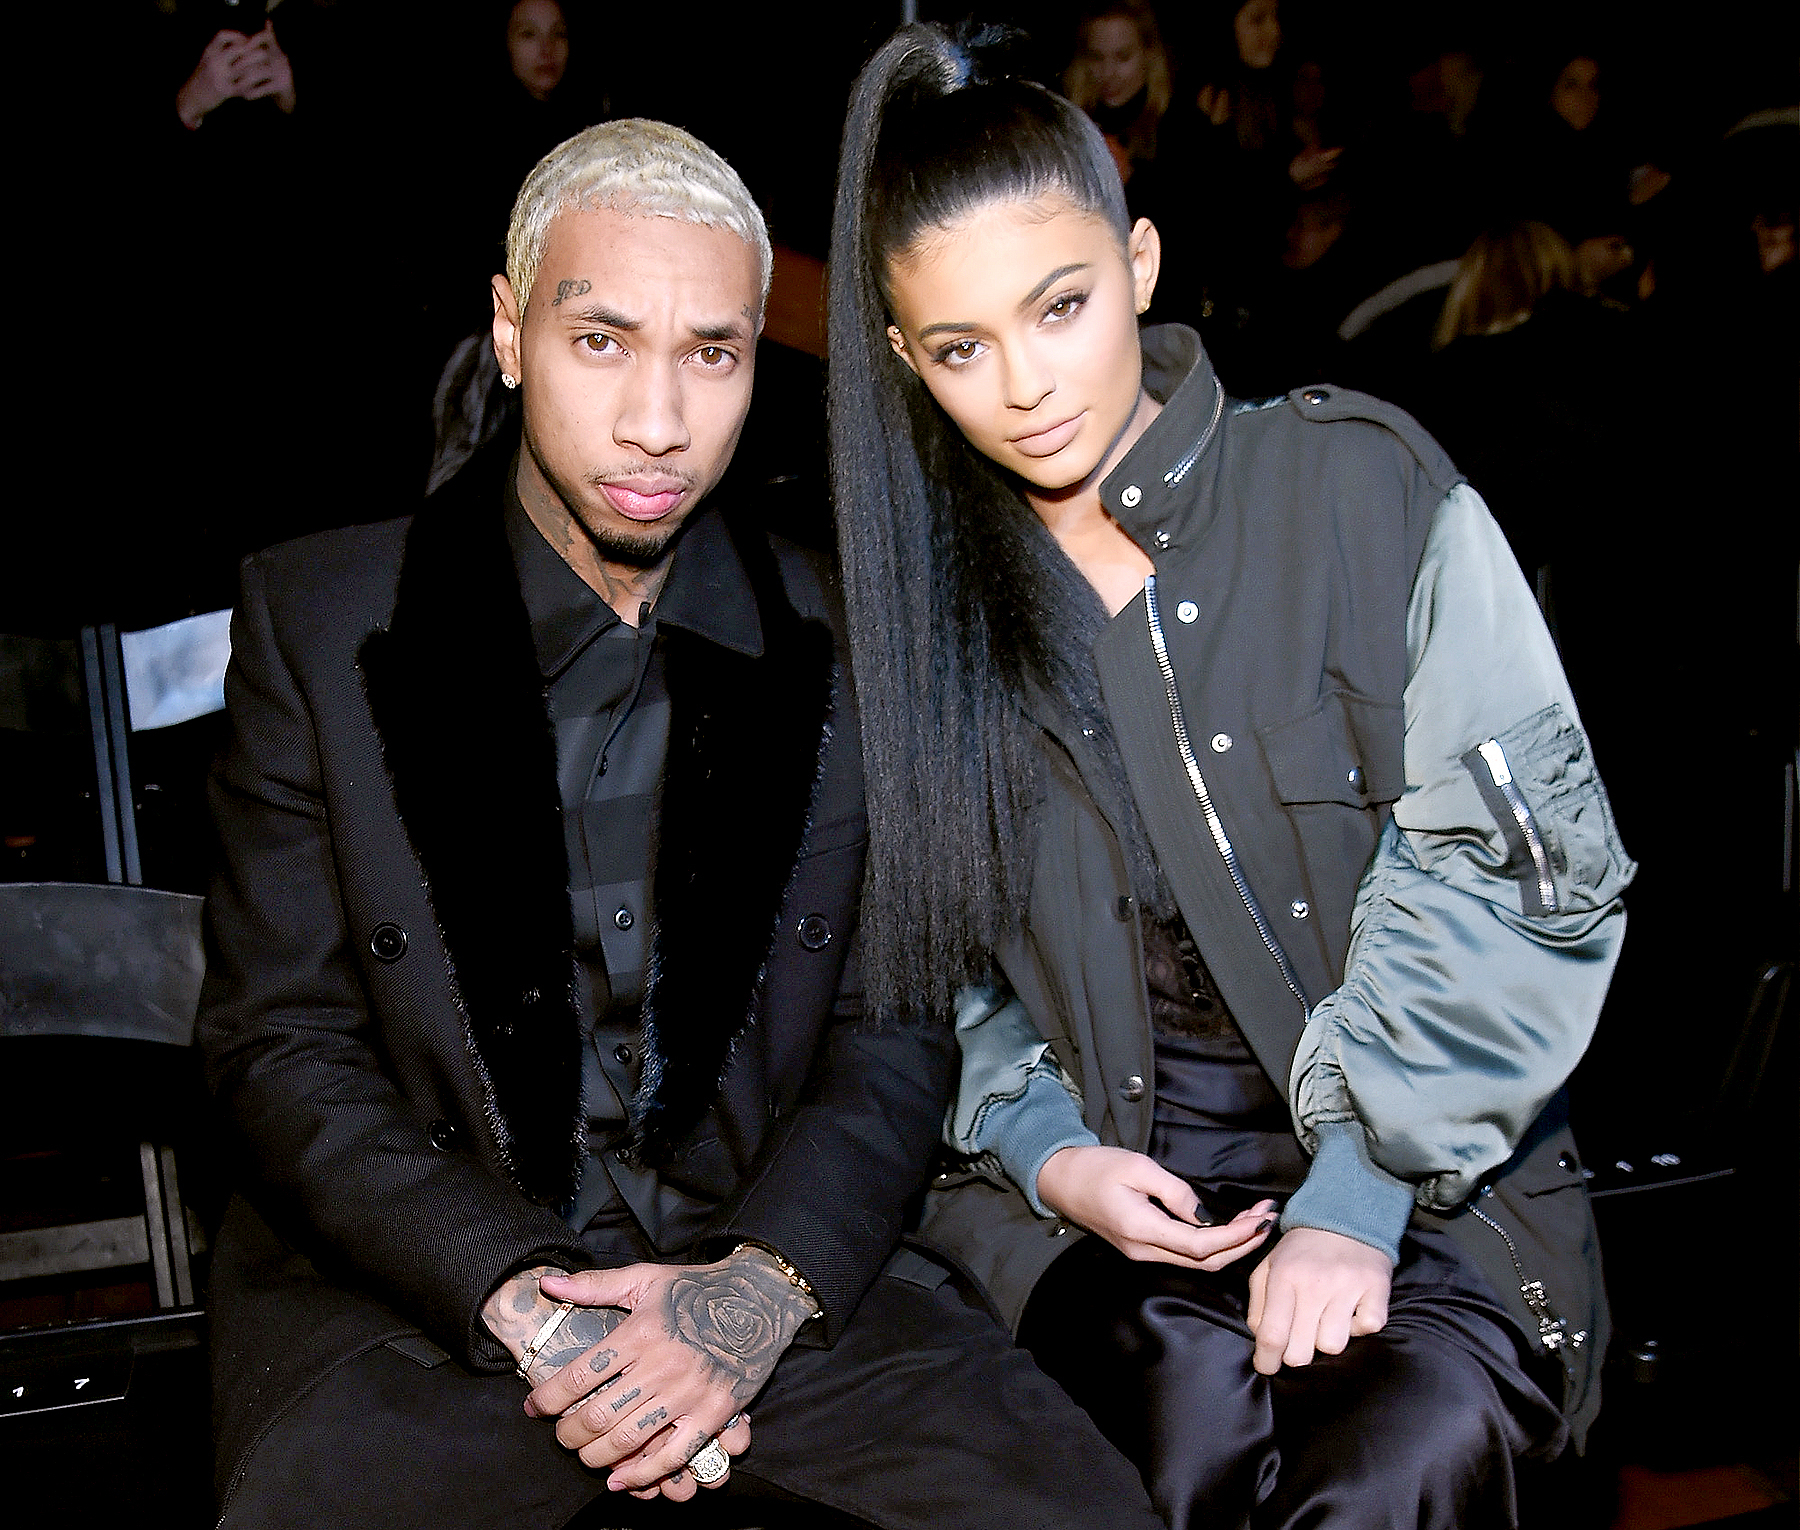 Tyga and Kylie Jenner attend the Alexander Wang Fall 2016 fashion show during New York Fashion Week at St. Bartholomew's Church on February 13, 2016 in New York City.